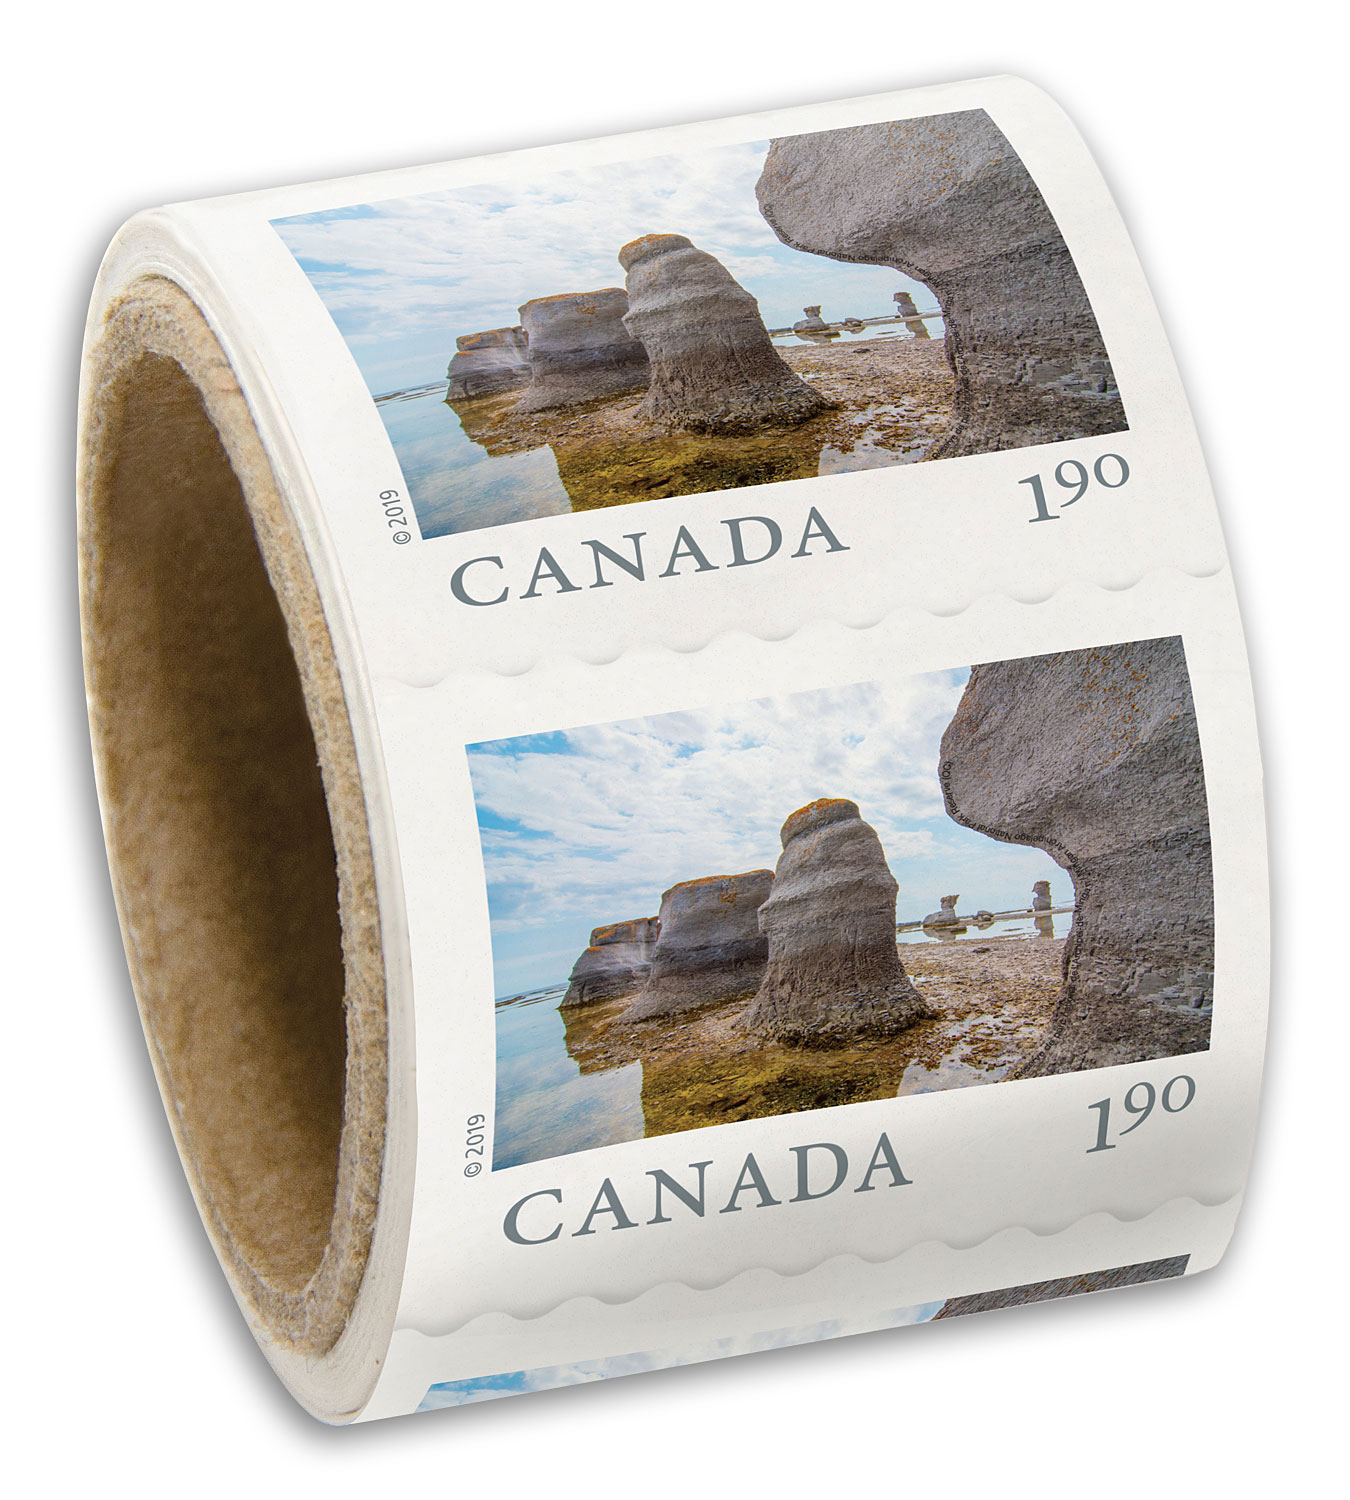 Canada - From Far and Wide (January 14, 2019) oversized rate coil of 50